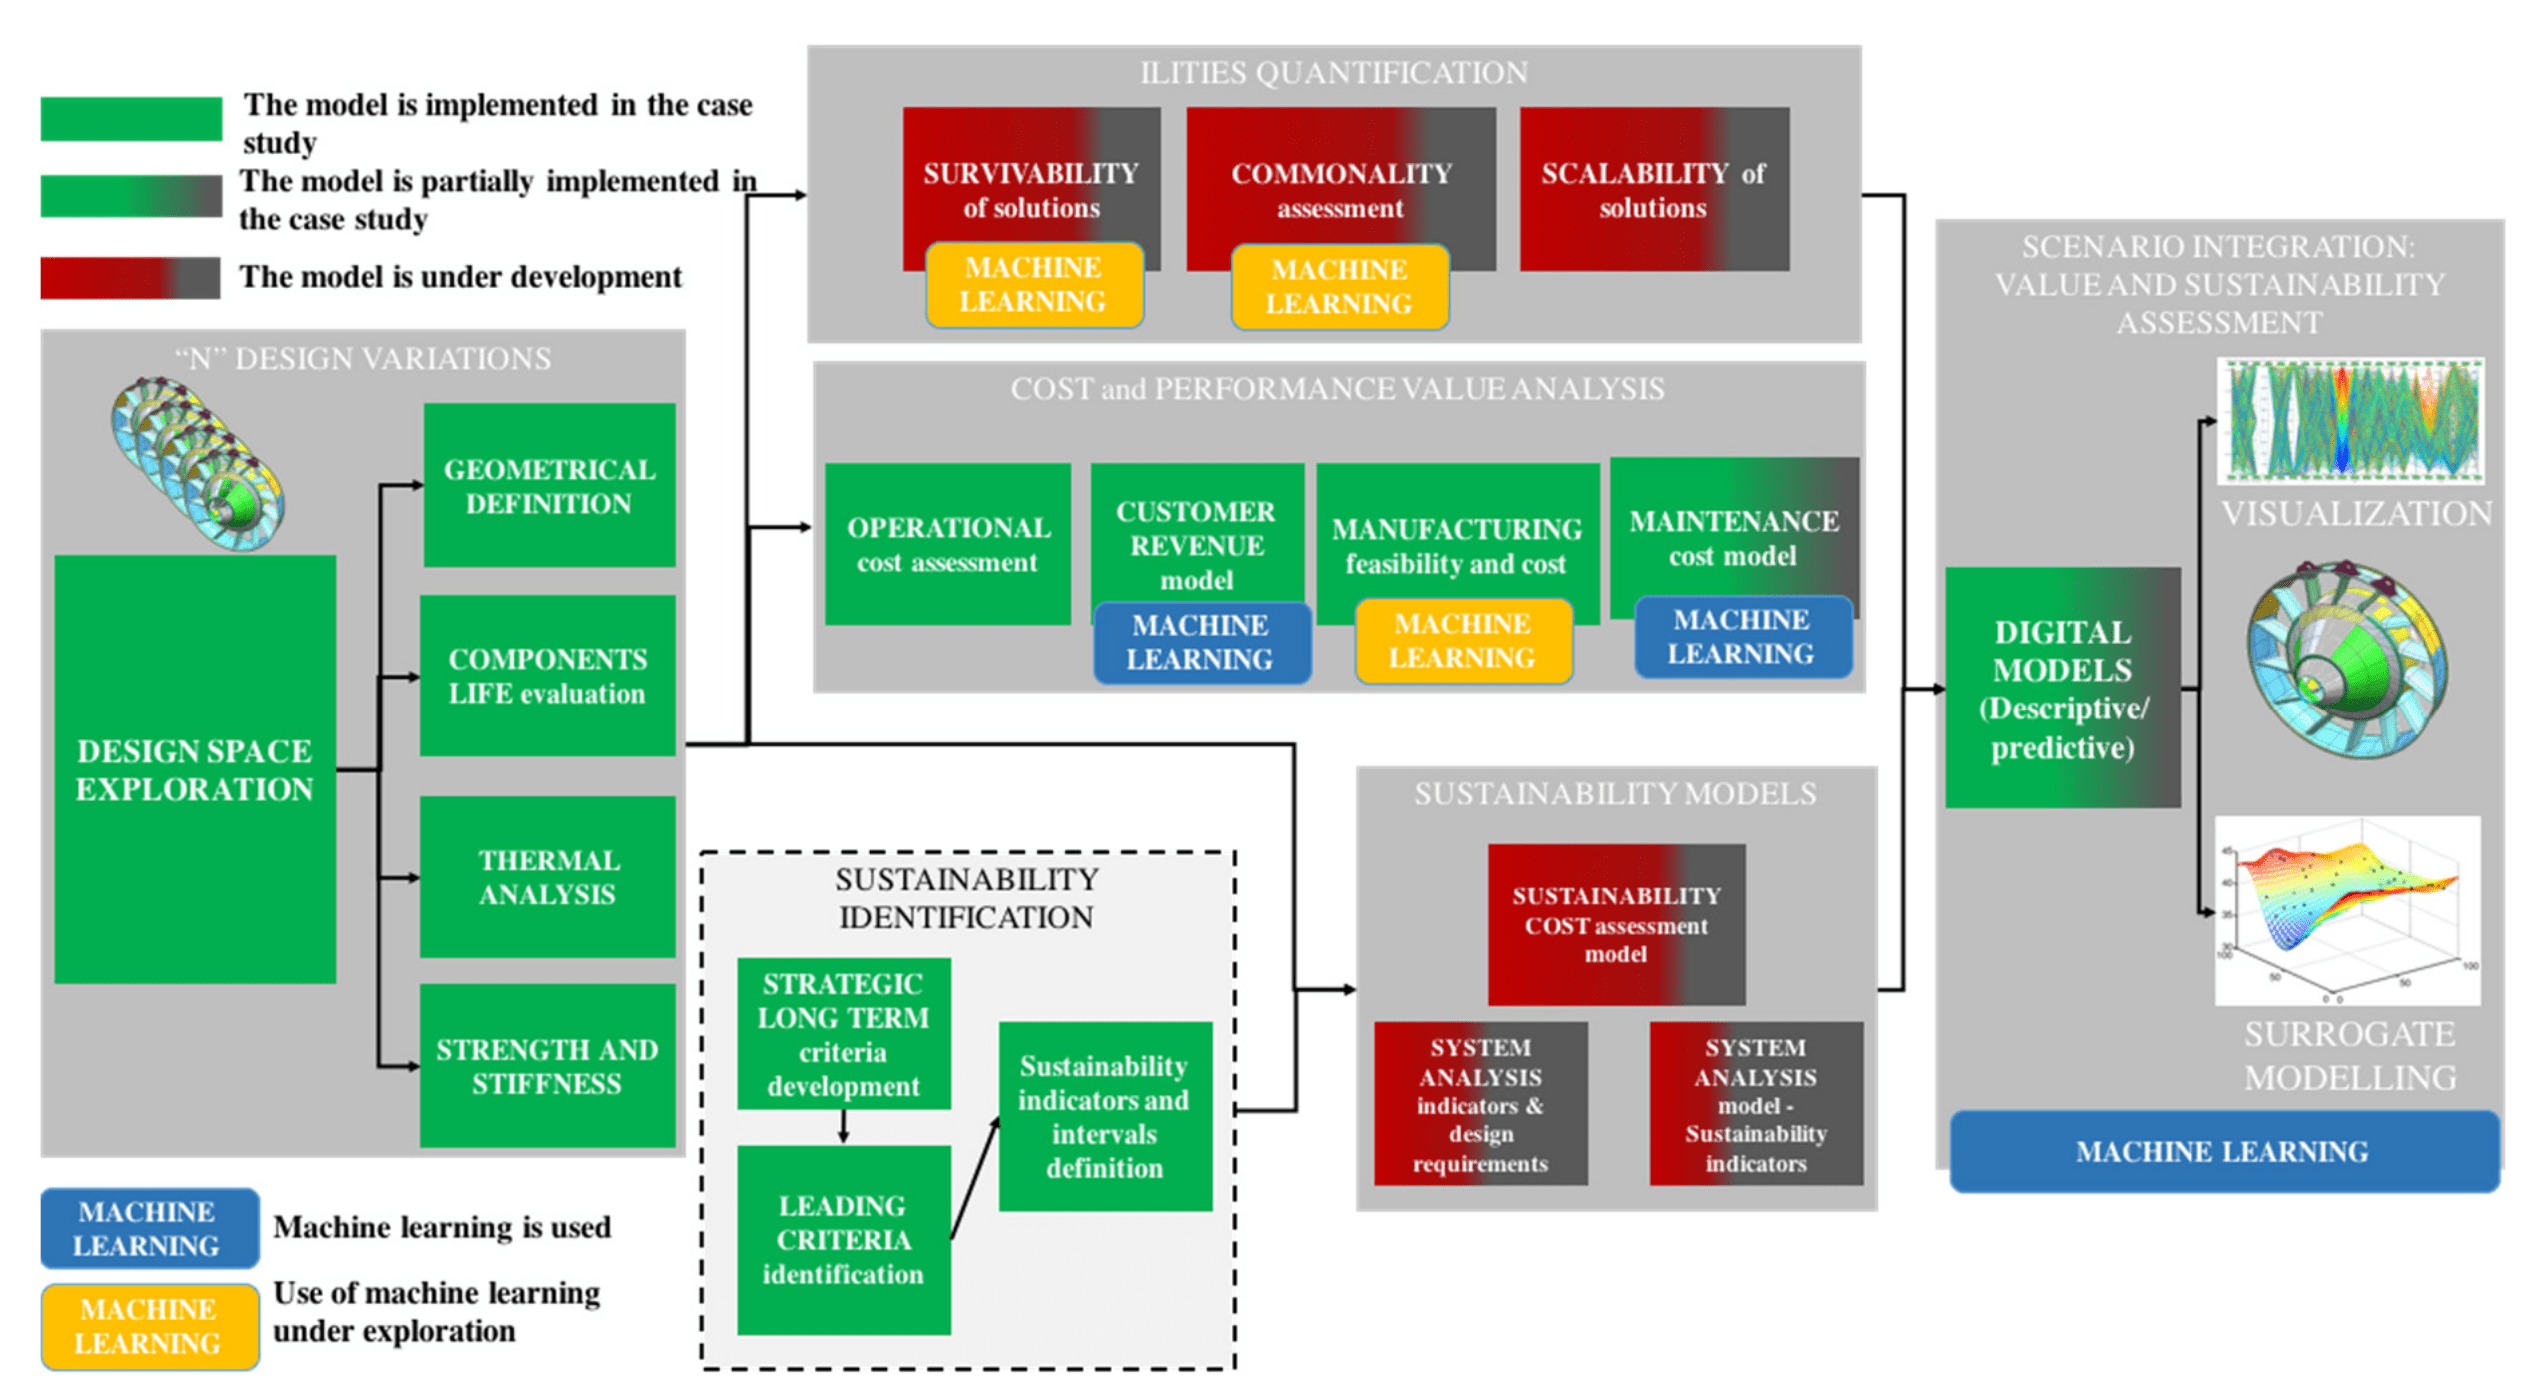 Model-based decision support for value and sustainability assessment and-sustainability assessment applying machine learning in aerospace product development